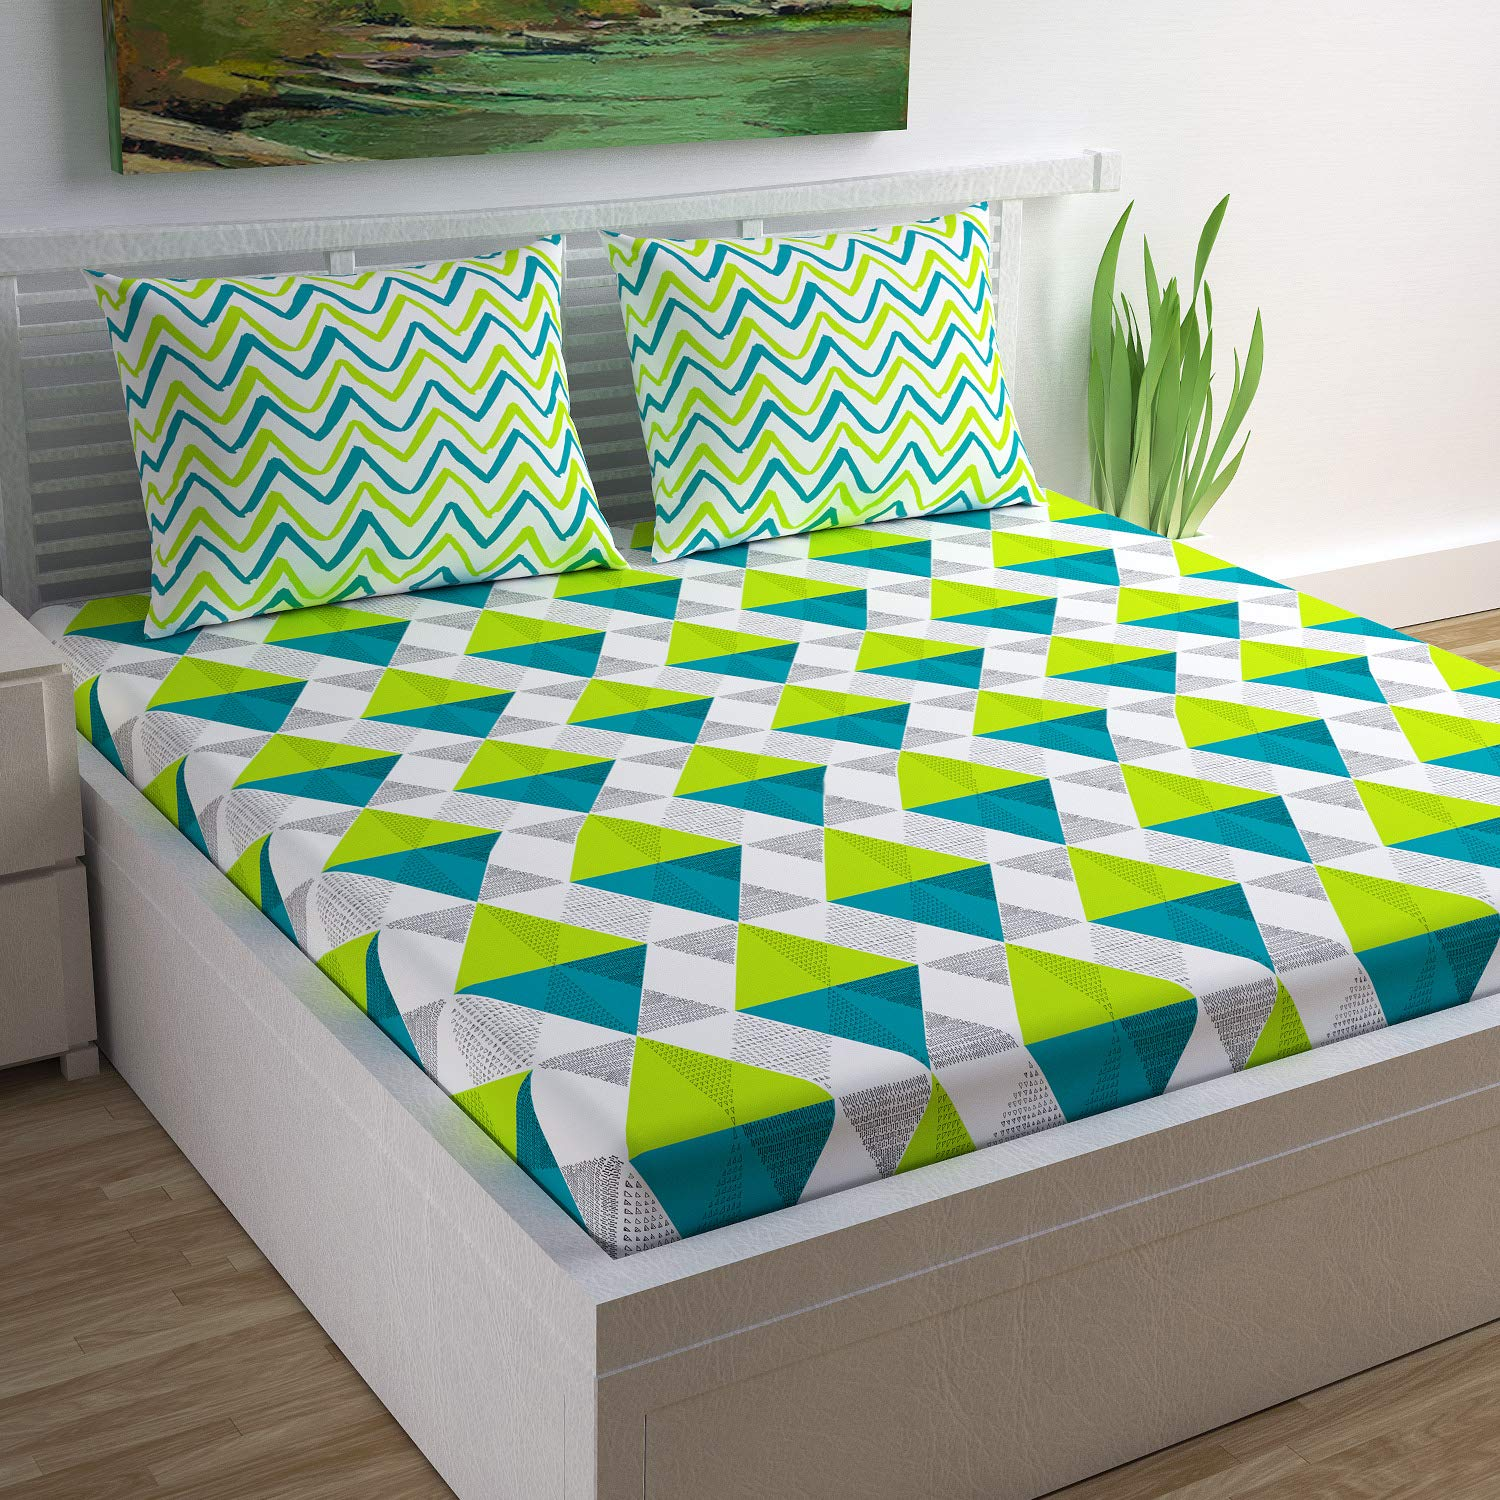 Divine Casa, 100% Cotton Geometric Print Mix N Match Bed sheet for Double Bedsheet (Lime, Teal and Off White)